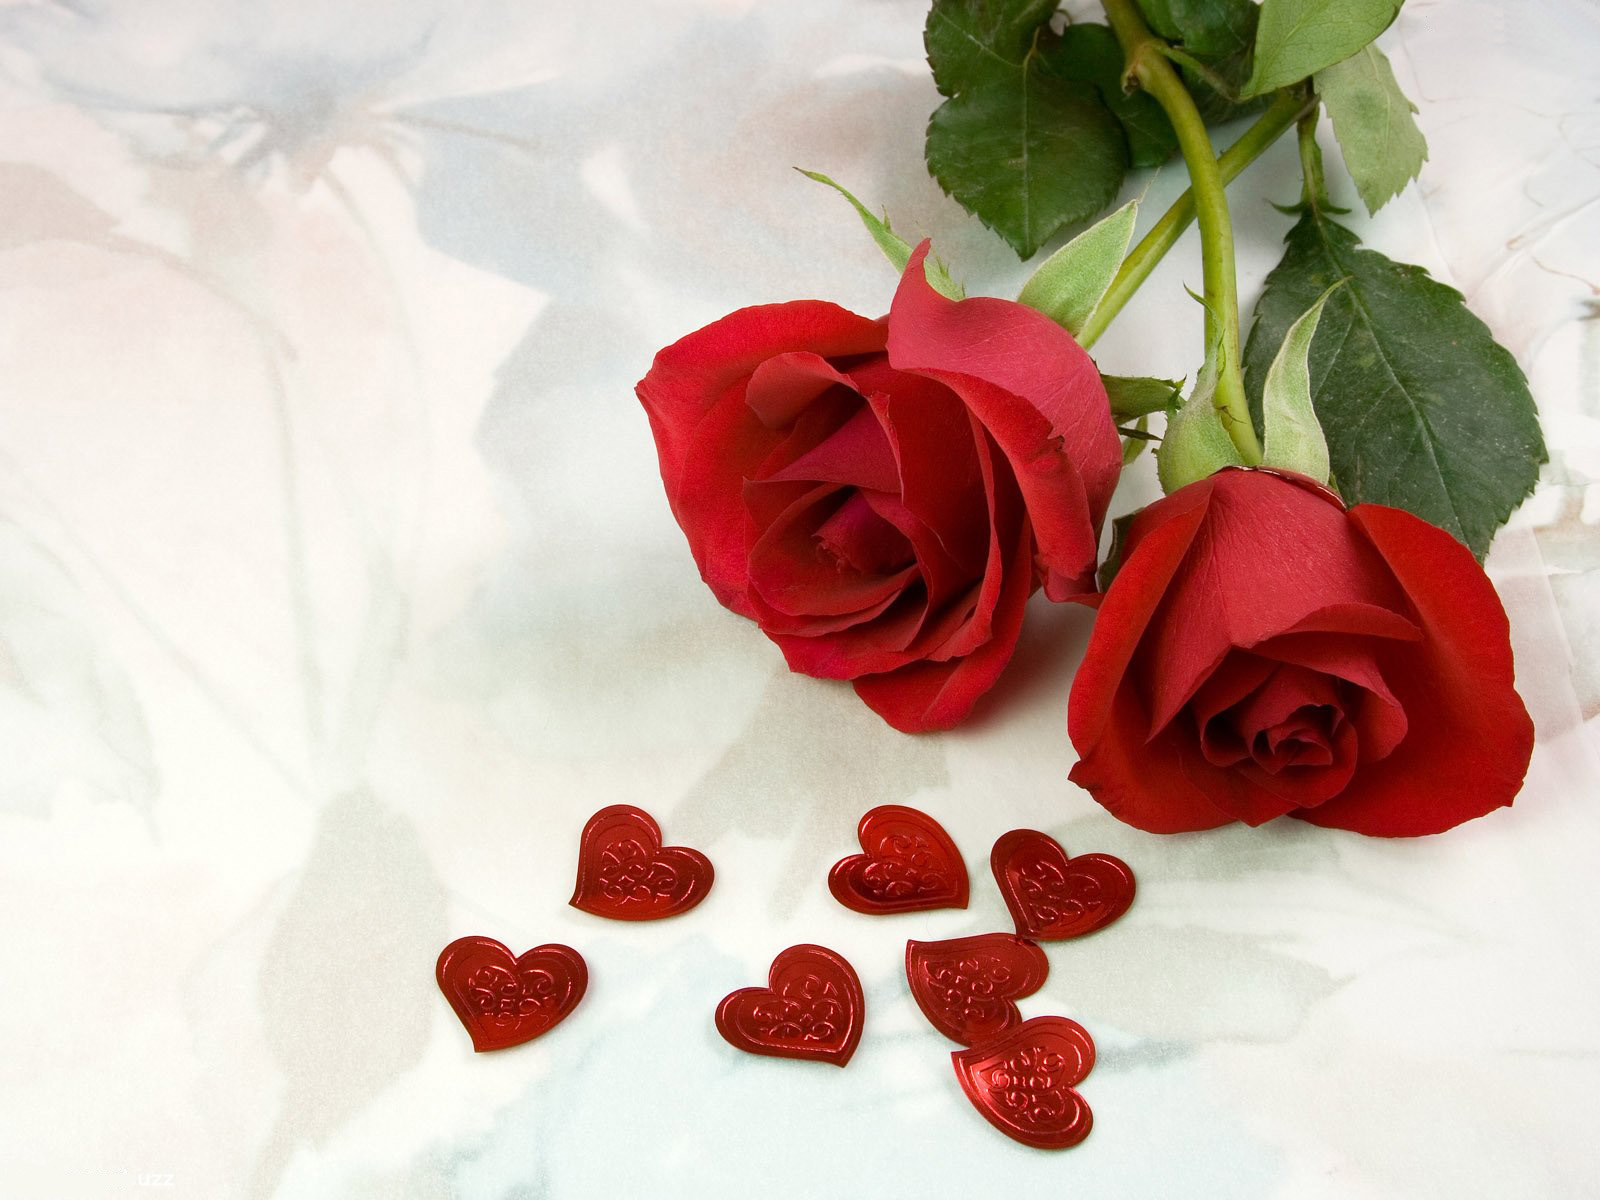 http://4.bp.blogspot.com/-KVBeyzL0hgQ/Tg6d7DSeLHI/AAAAAAAABGI/dGfEOGoWp8M/s1600/The-best-top-desktop-roses-wallpapers-hd-rose-wallpaper-1-two-red-roses.jpg